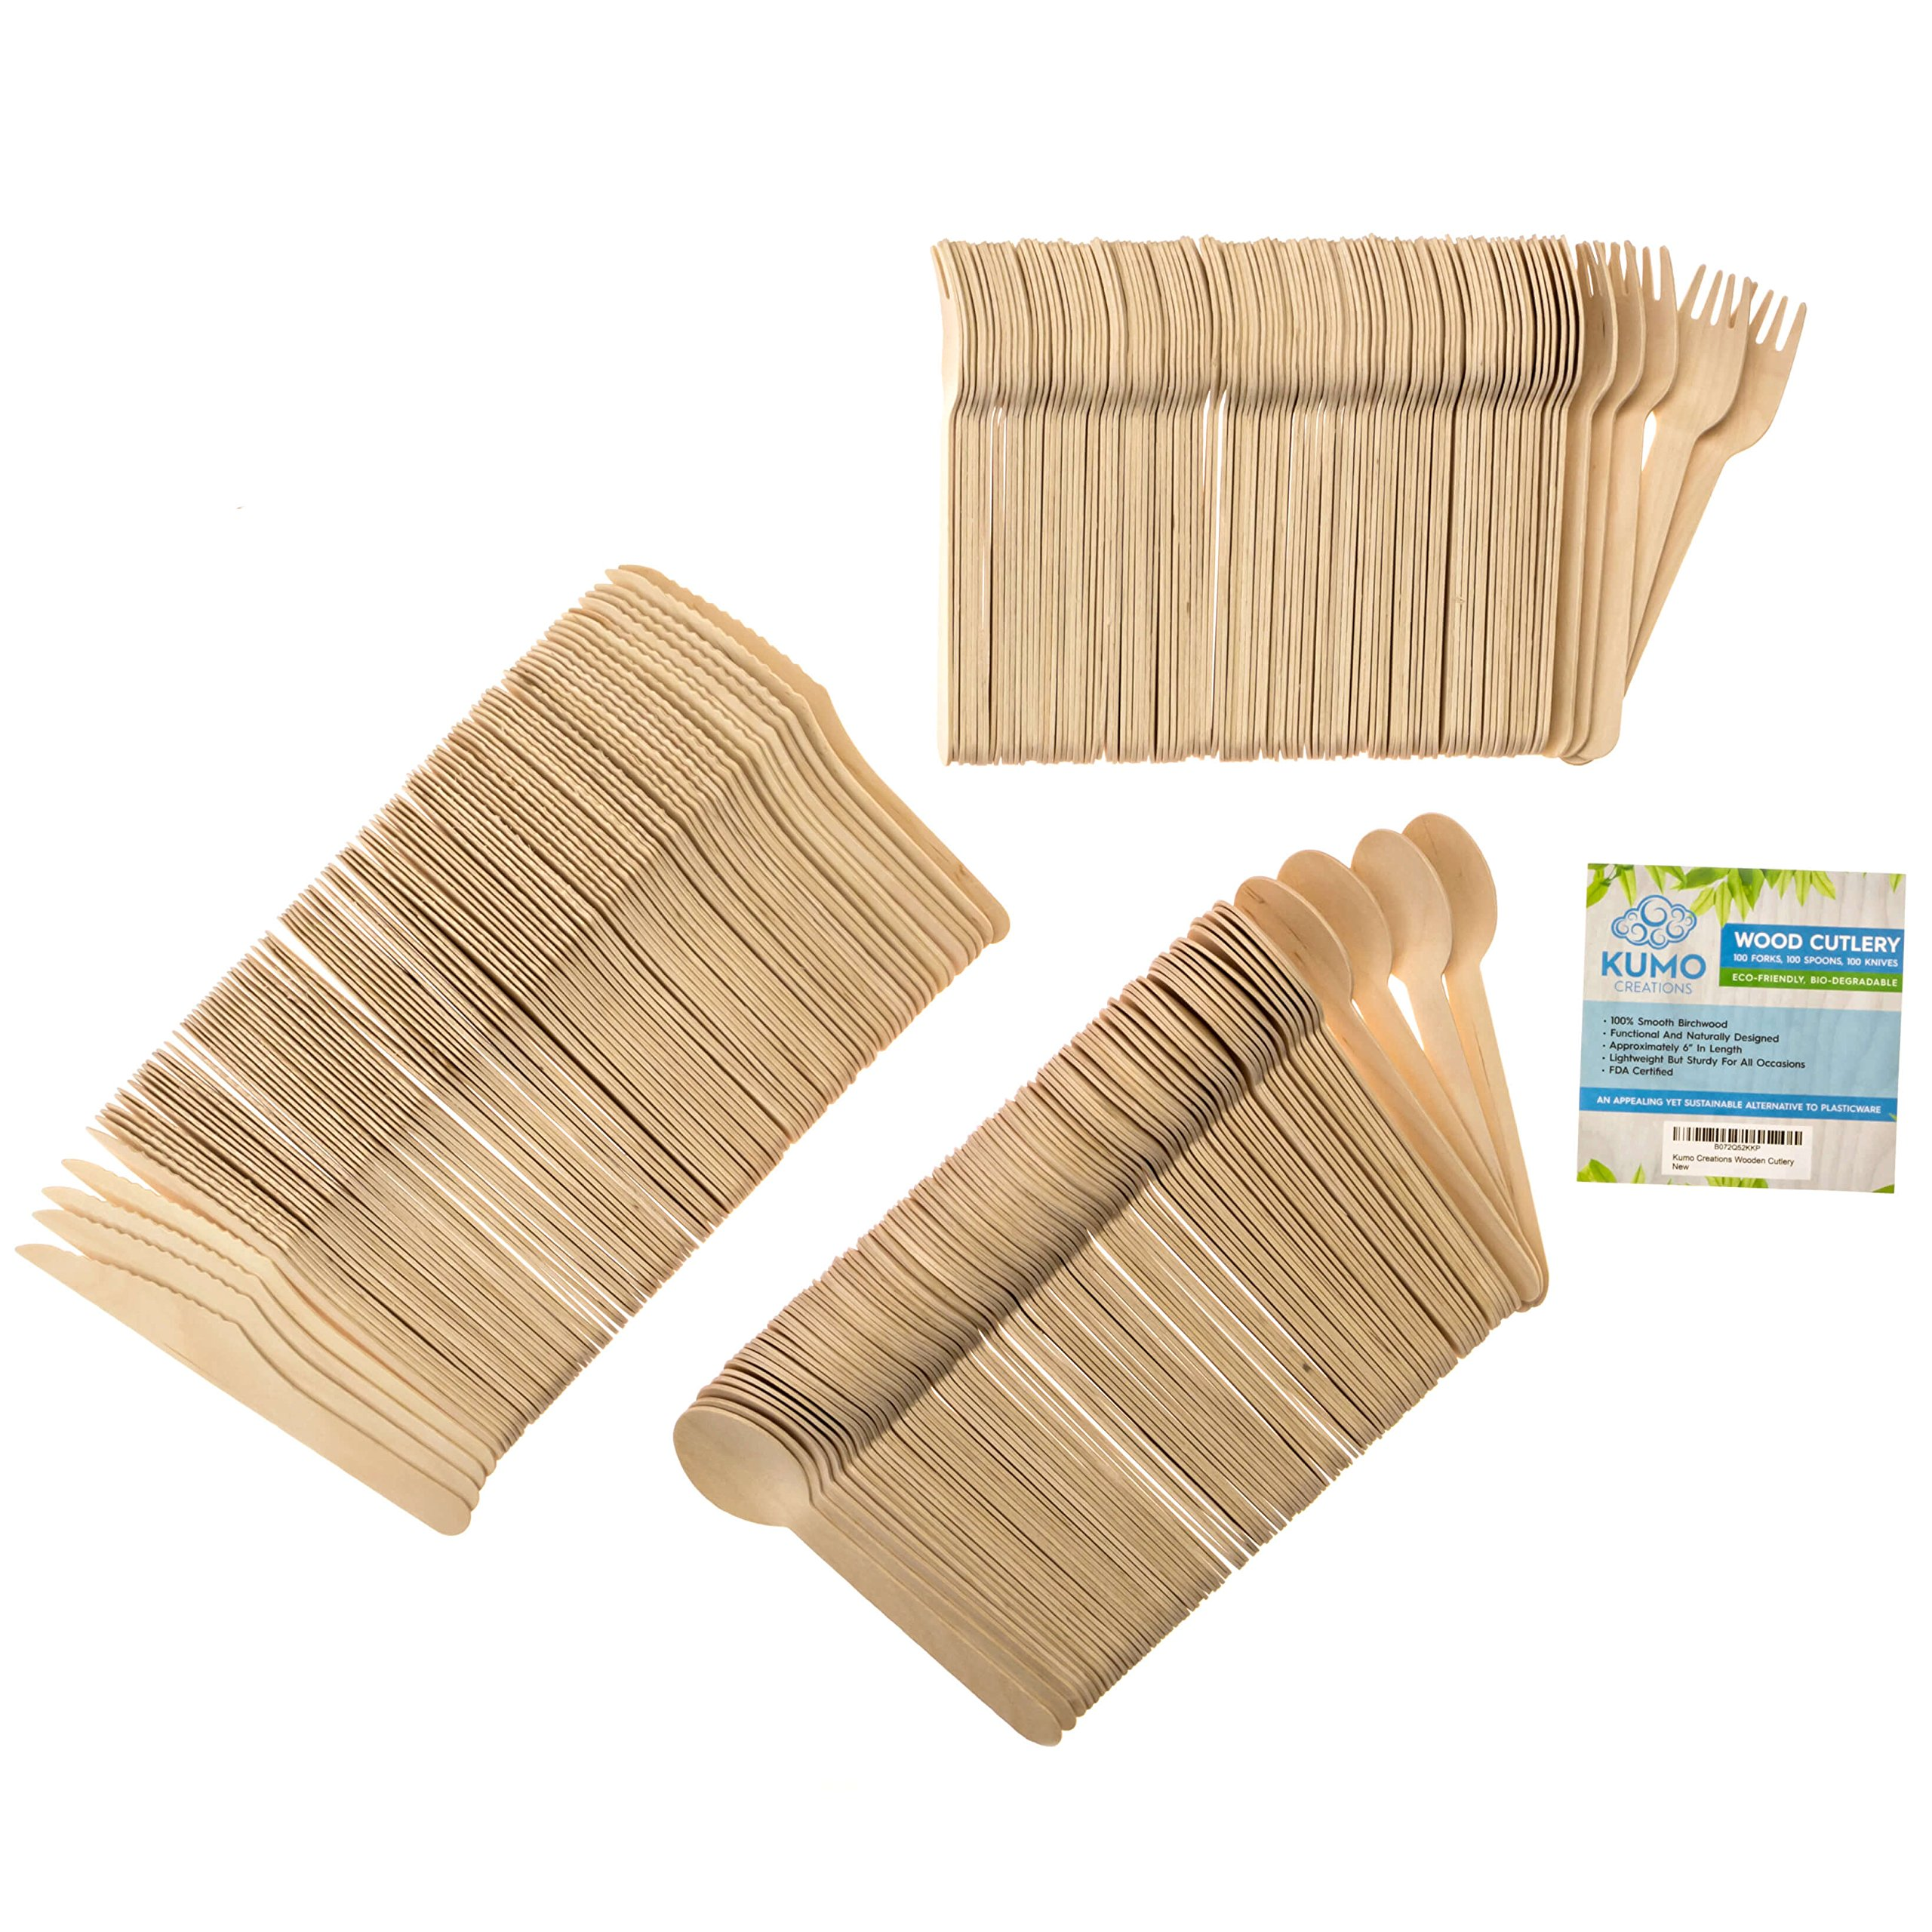 """Wooden Disposable Cutlery Combo Set – 300 pc - 100 Forks, 100 Spoons, 100 Knives, 6"""" Utensils - Eco Friendly, Biodegradable, Compostable – Parties, Weddings, Gatherings – FORGET Plastic, GO GREEN! by KUMO Creations (Image #2)"""